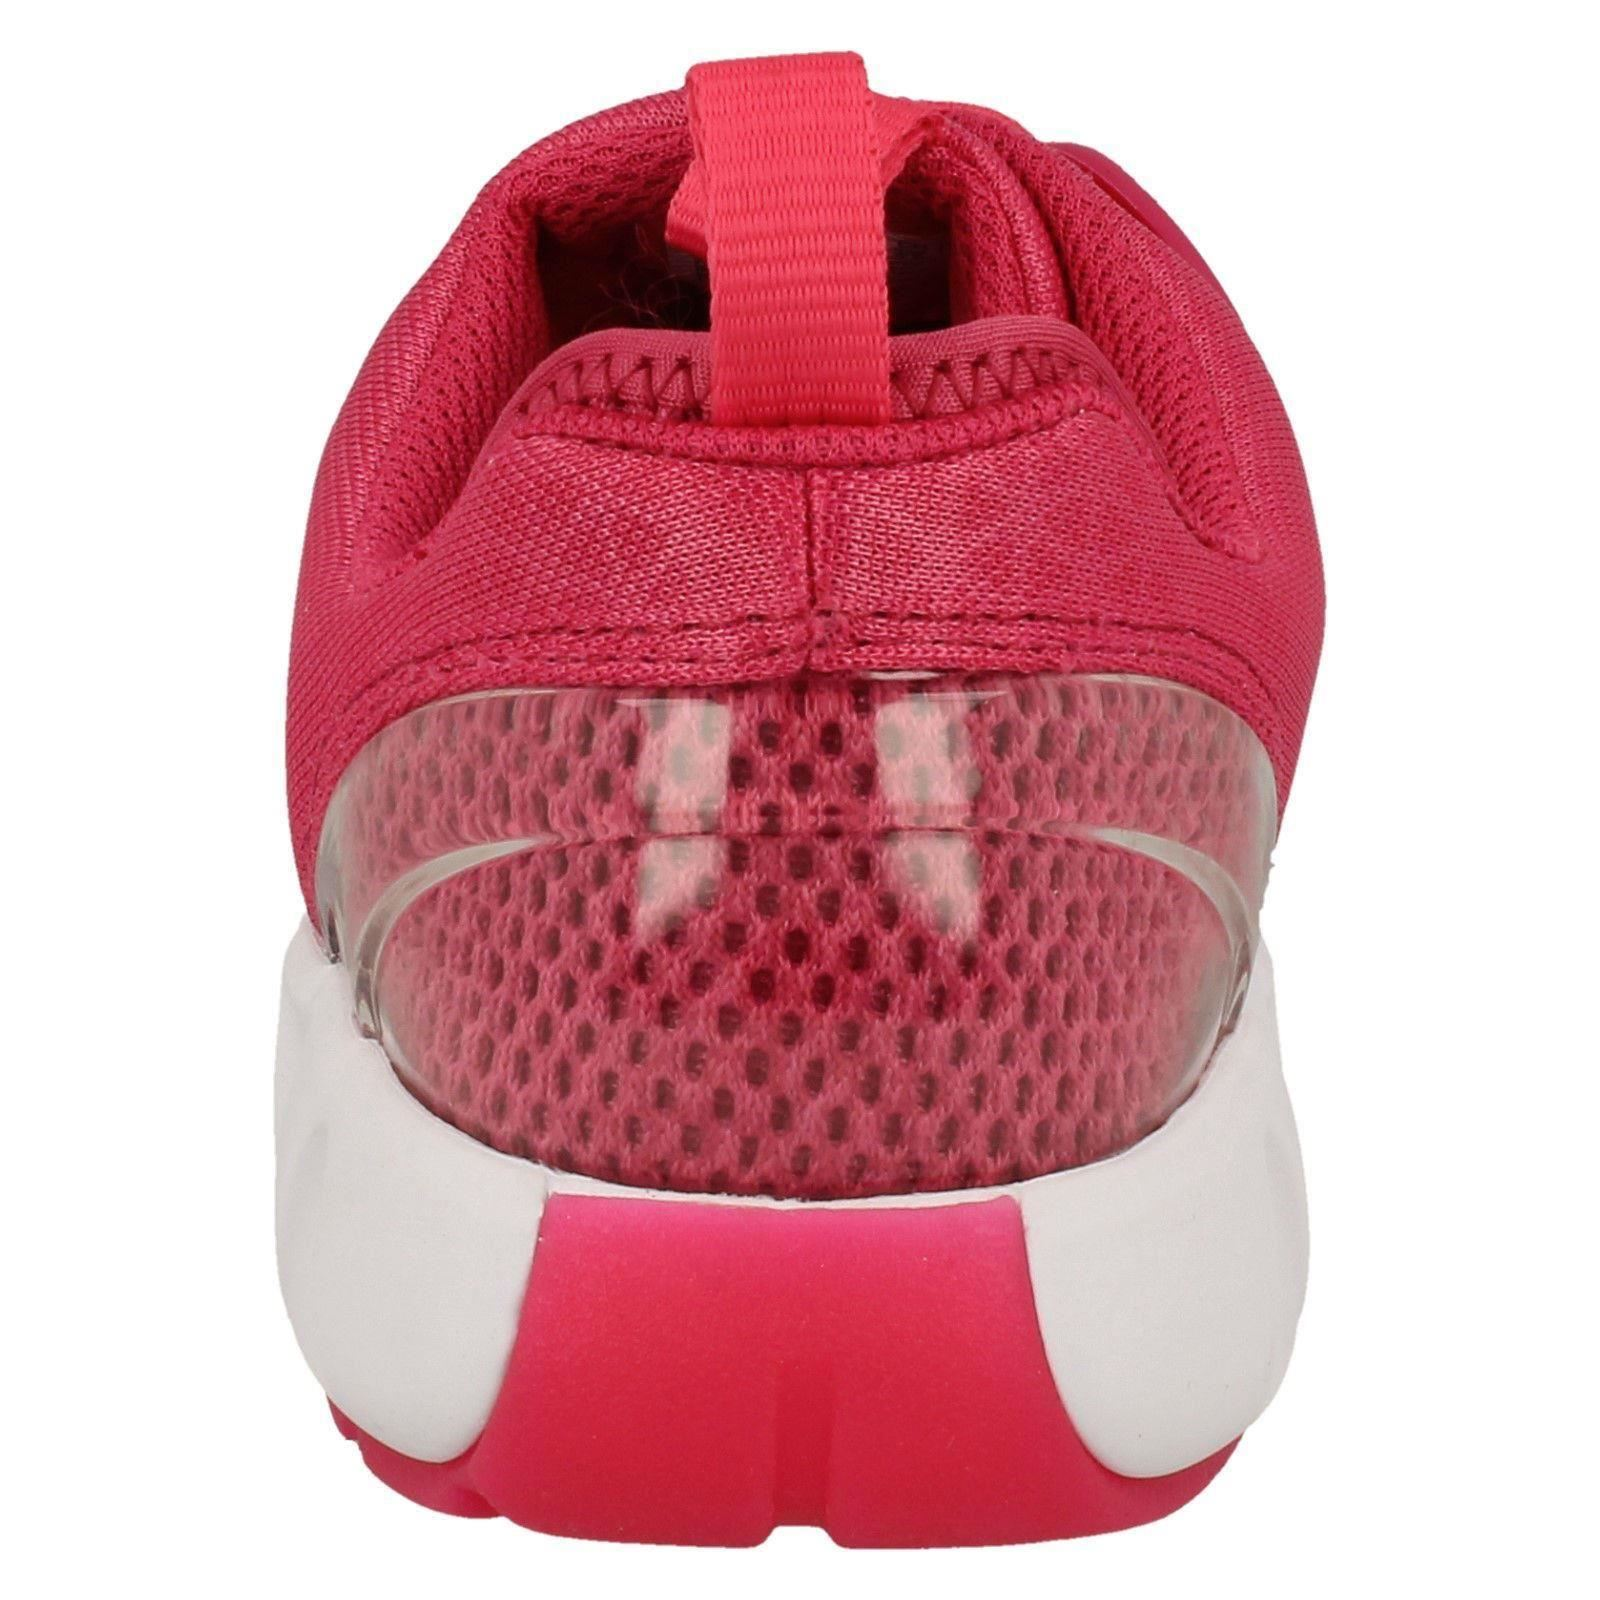 """Filles gloforms BY CLARKS Synthétique à Lacets Baskets /""""lumineux Glo/"""""""